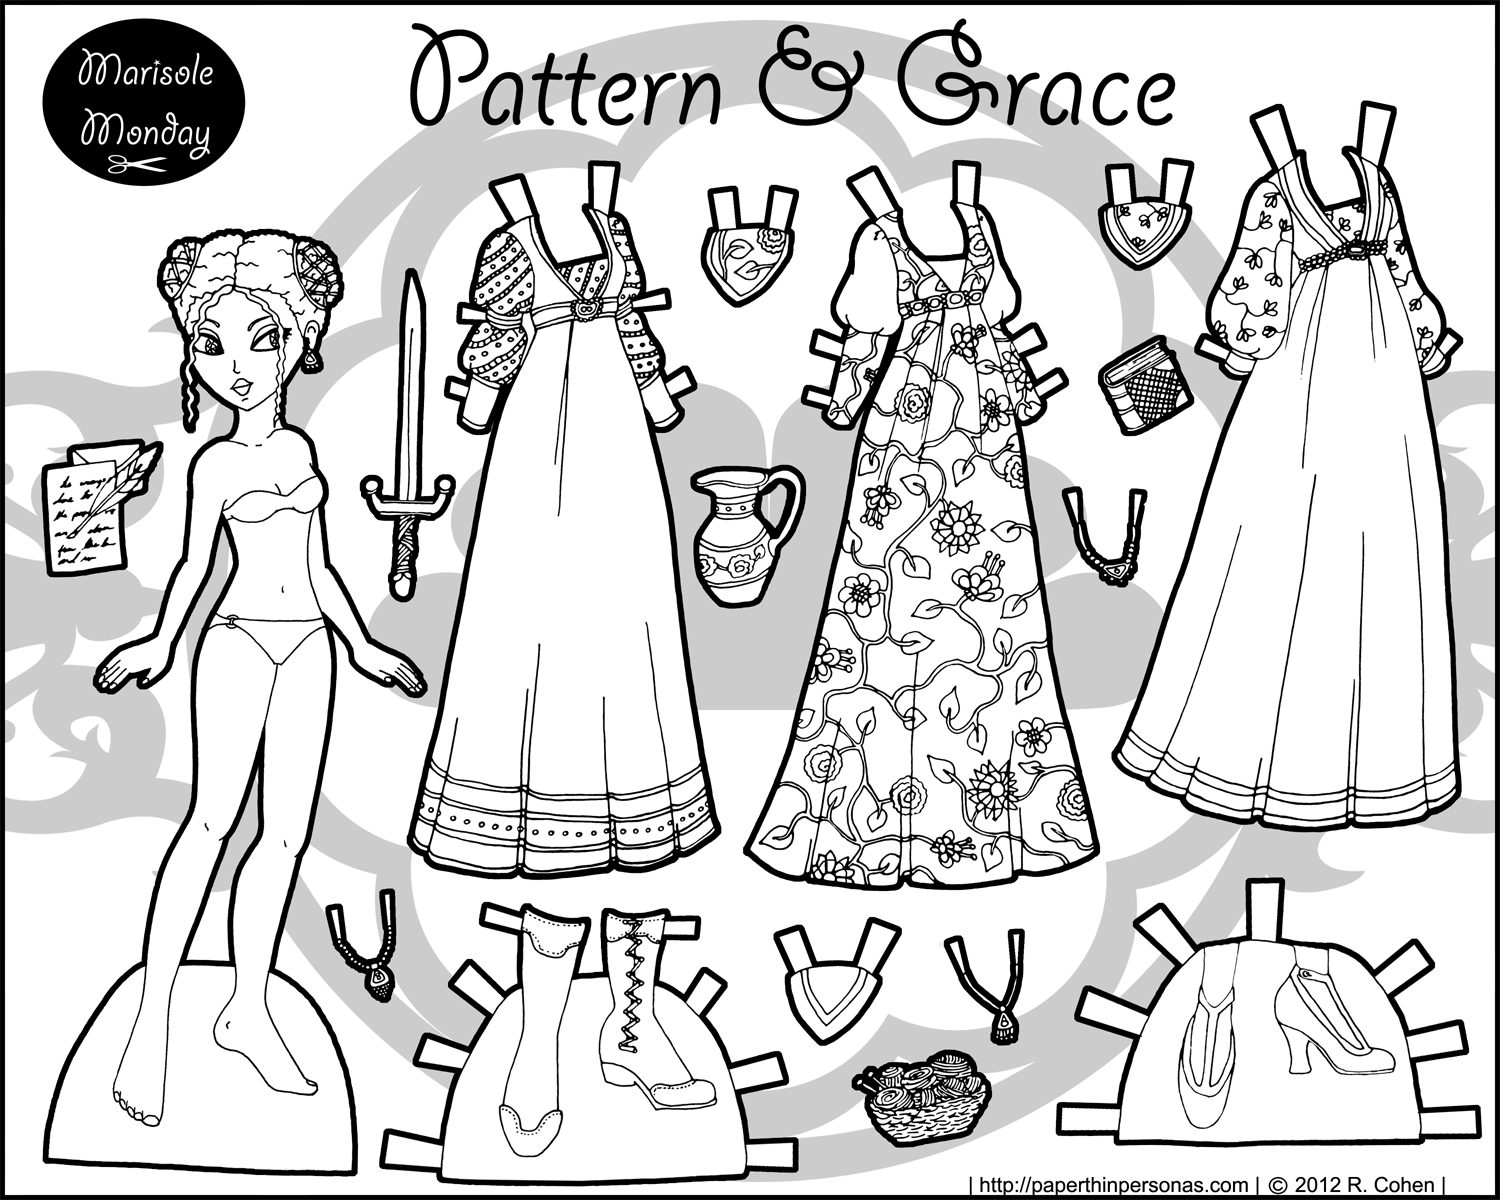 Patterns & Grace: A Black & White Fantasy Paper Doll